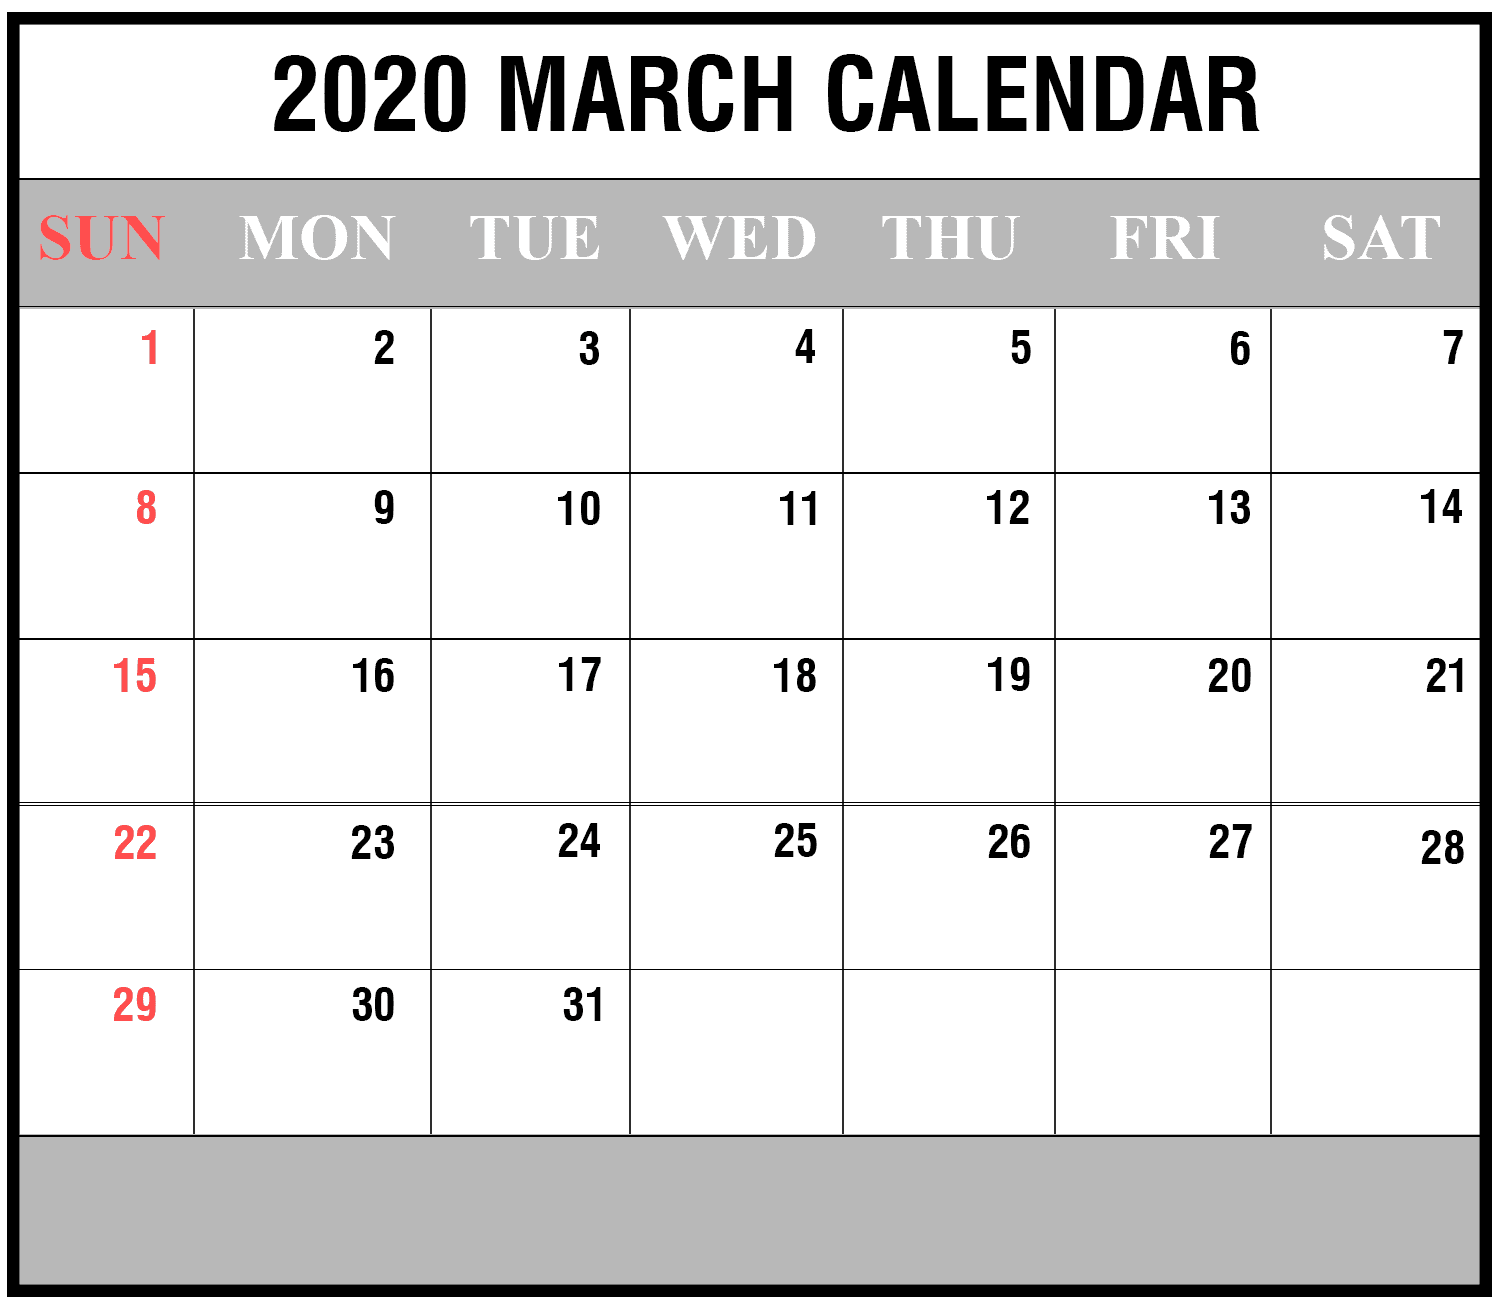 Print Friendly April 2020 Canada Calendar For Printing: How To Schedule Your Month With March 2020 Printable